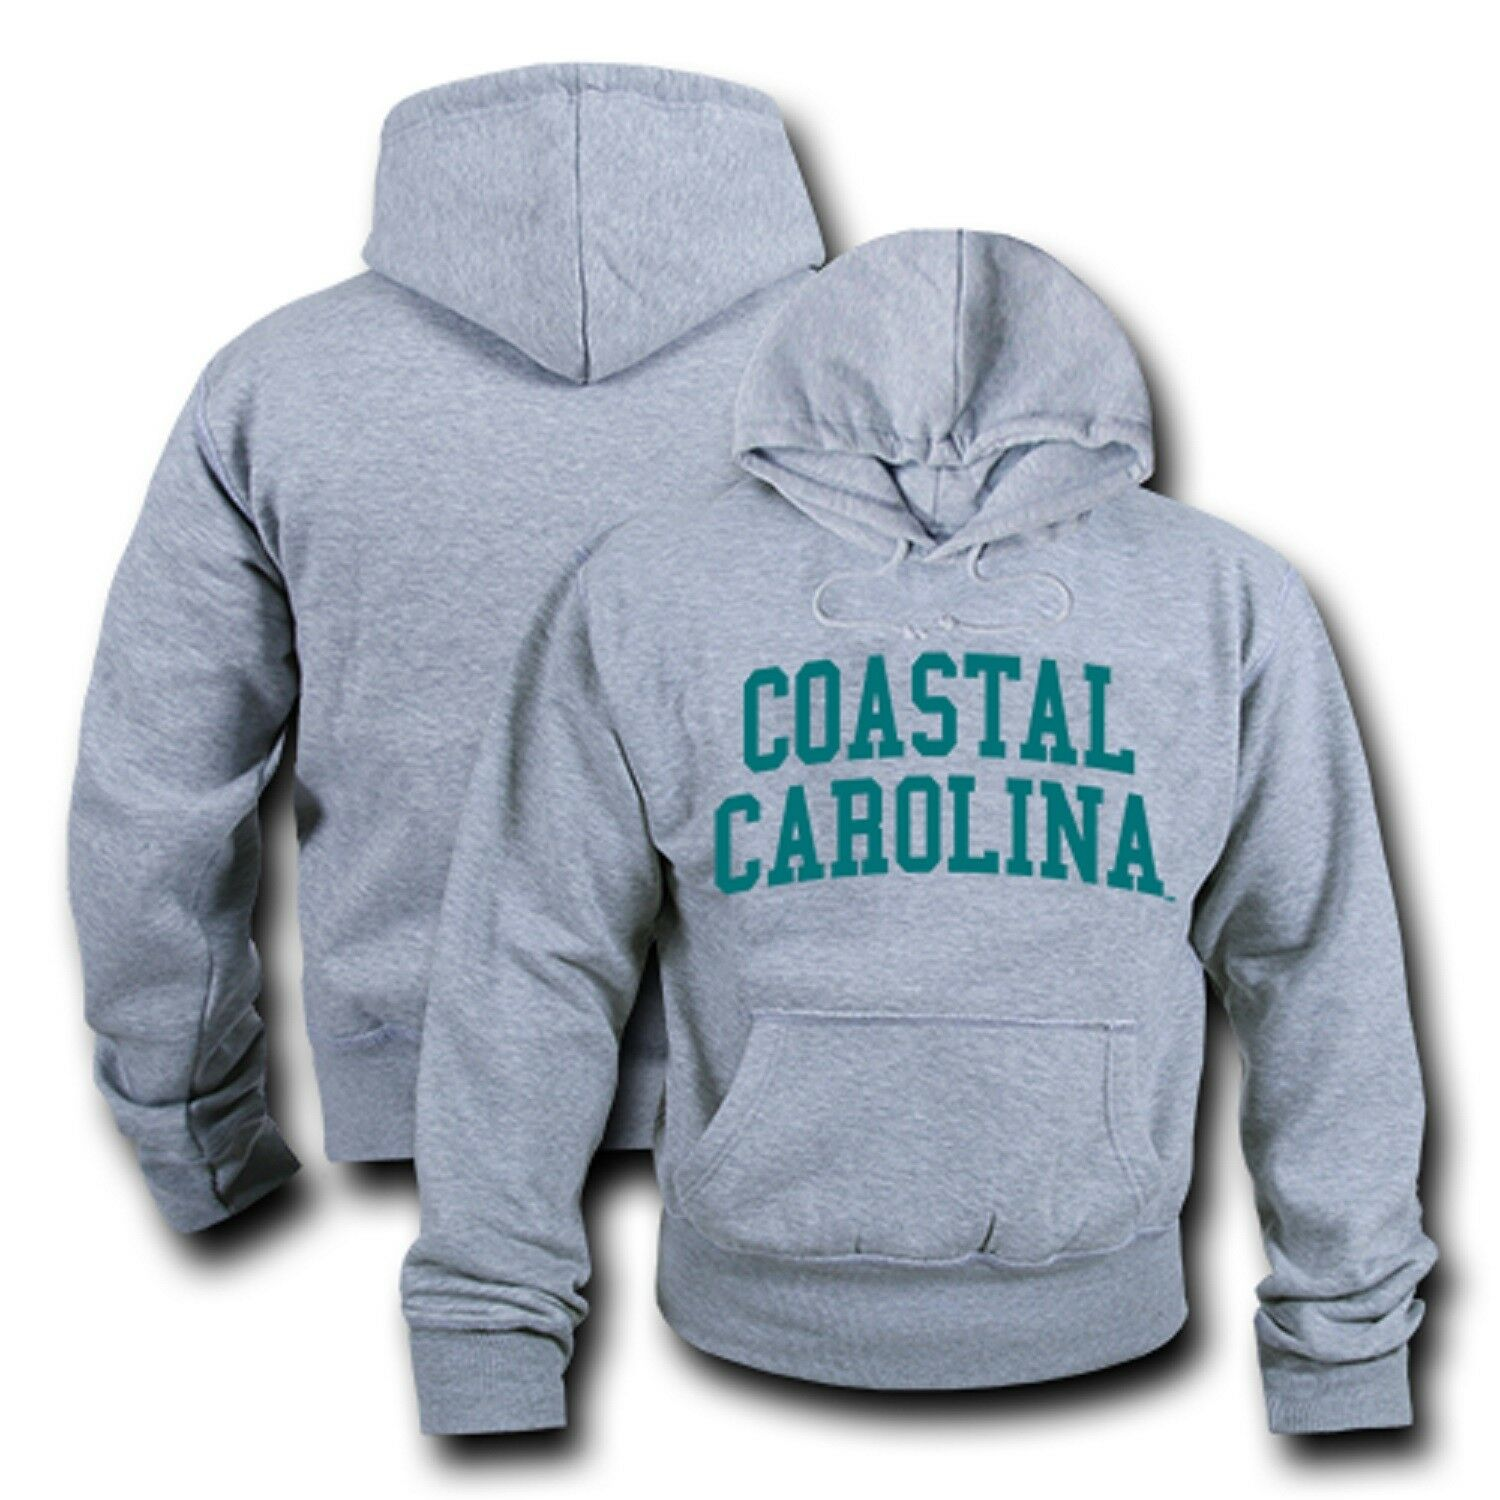 Coastal Carolina University Chanticleers NCAA Sweatshirt S M L XL 2XL